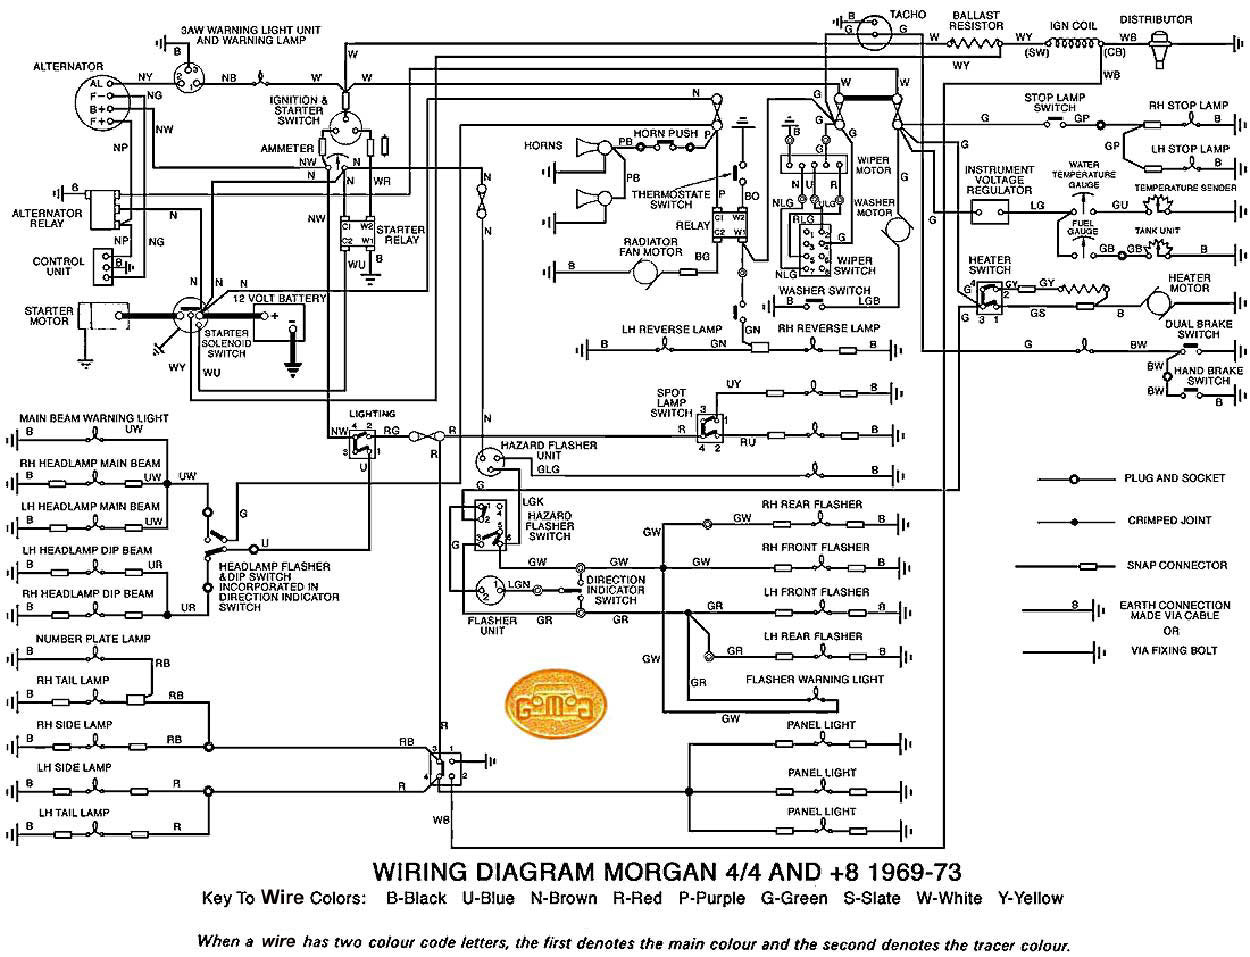 1969 mustang fuse box wiring diagram